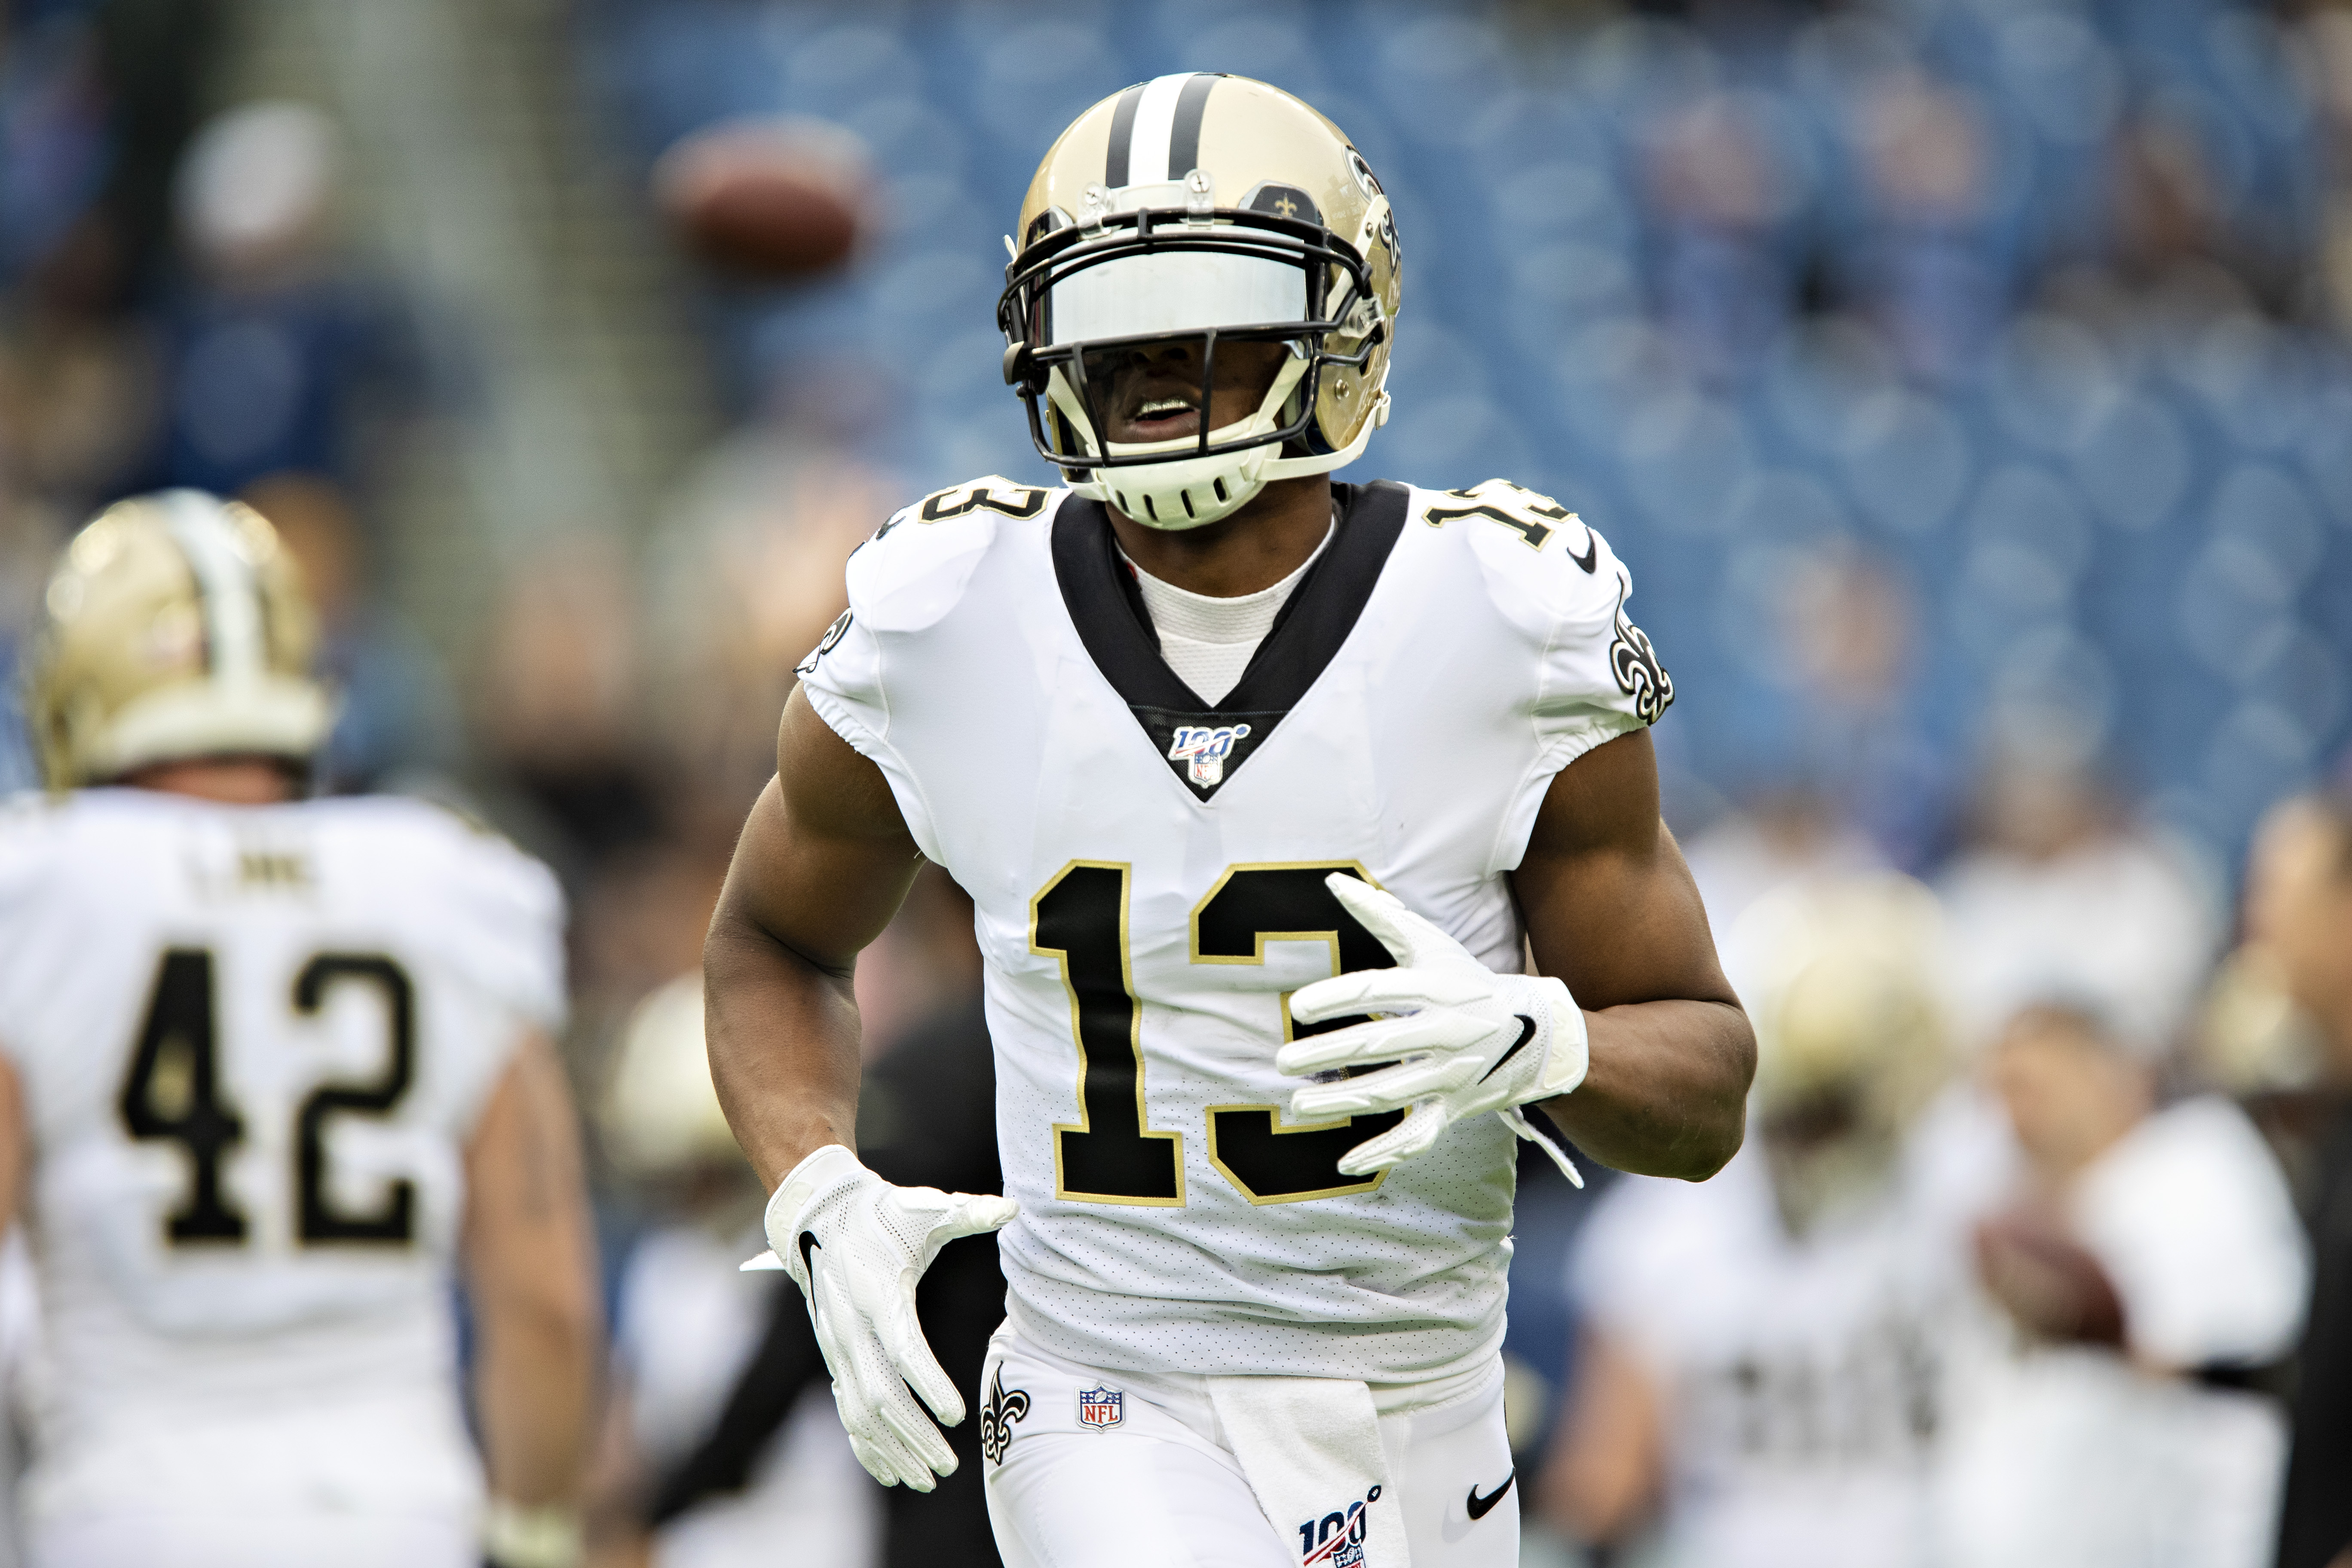 Michael Thomas #13 of the New Orleans Saints warms up before a game against the Tennessee Titans at Nissan Stadium on December 22, 2019 in Nashville, Tennessee. The Saints defeated the Titans 38-28.